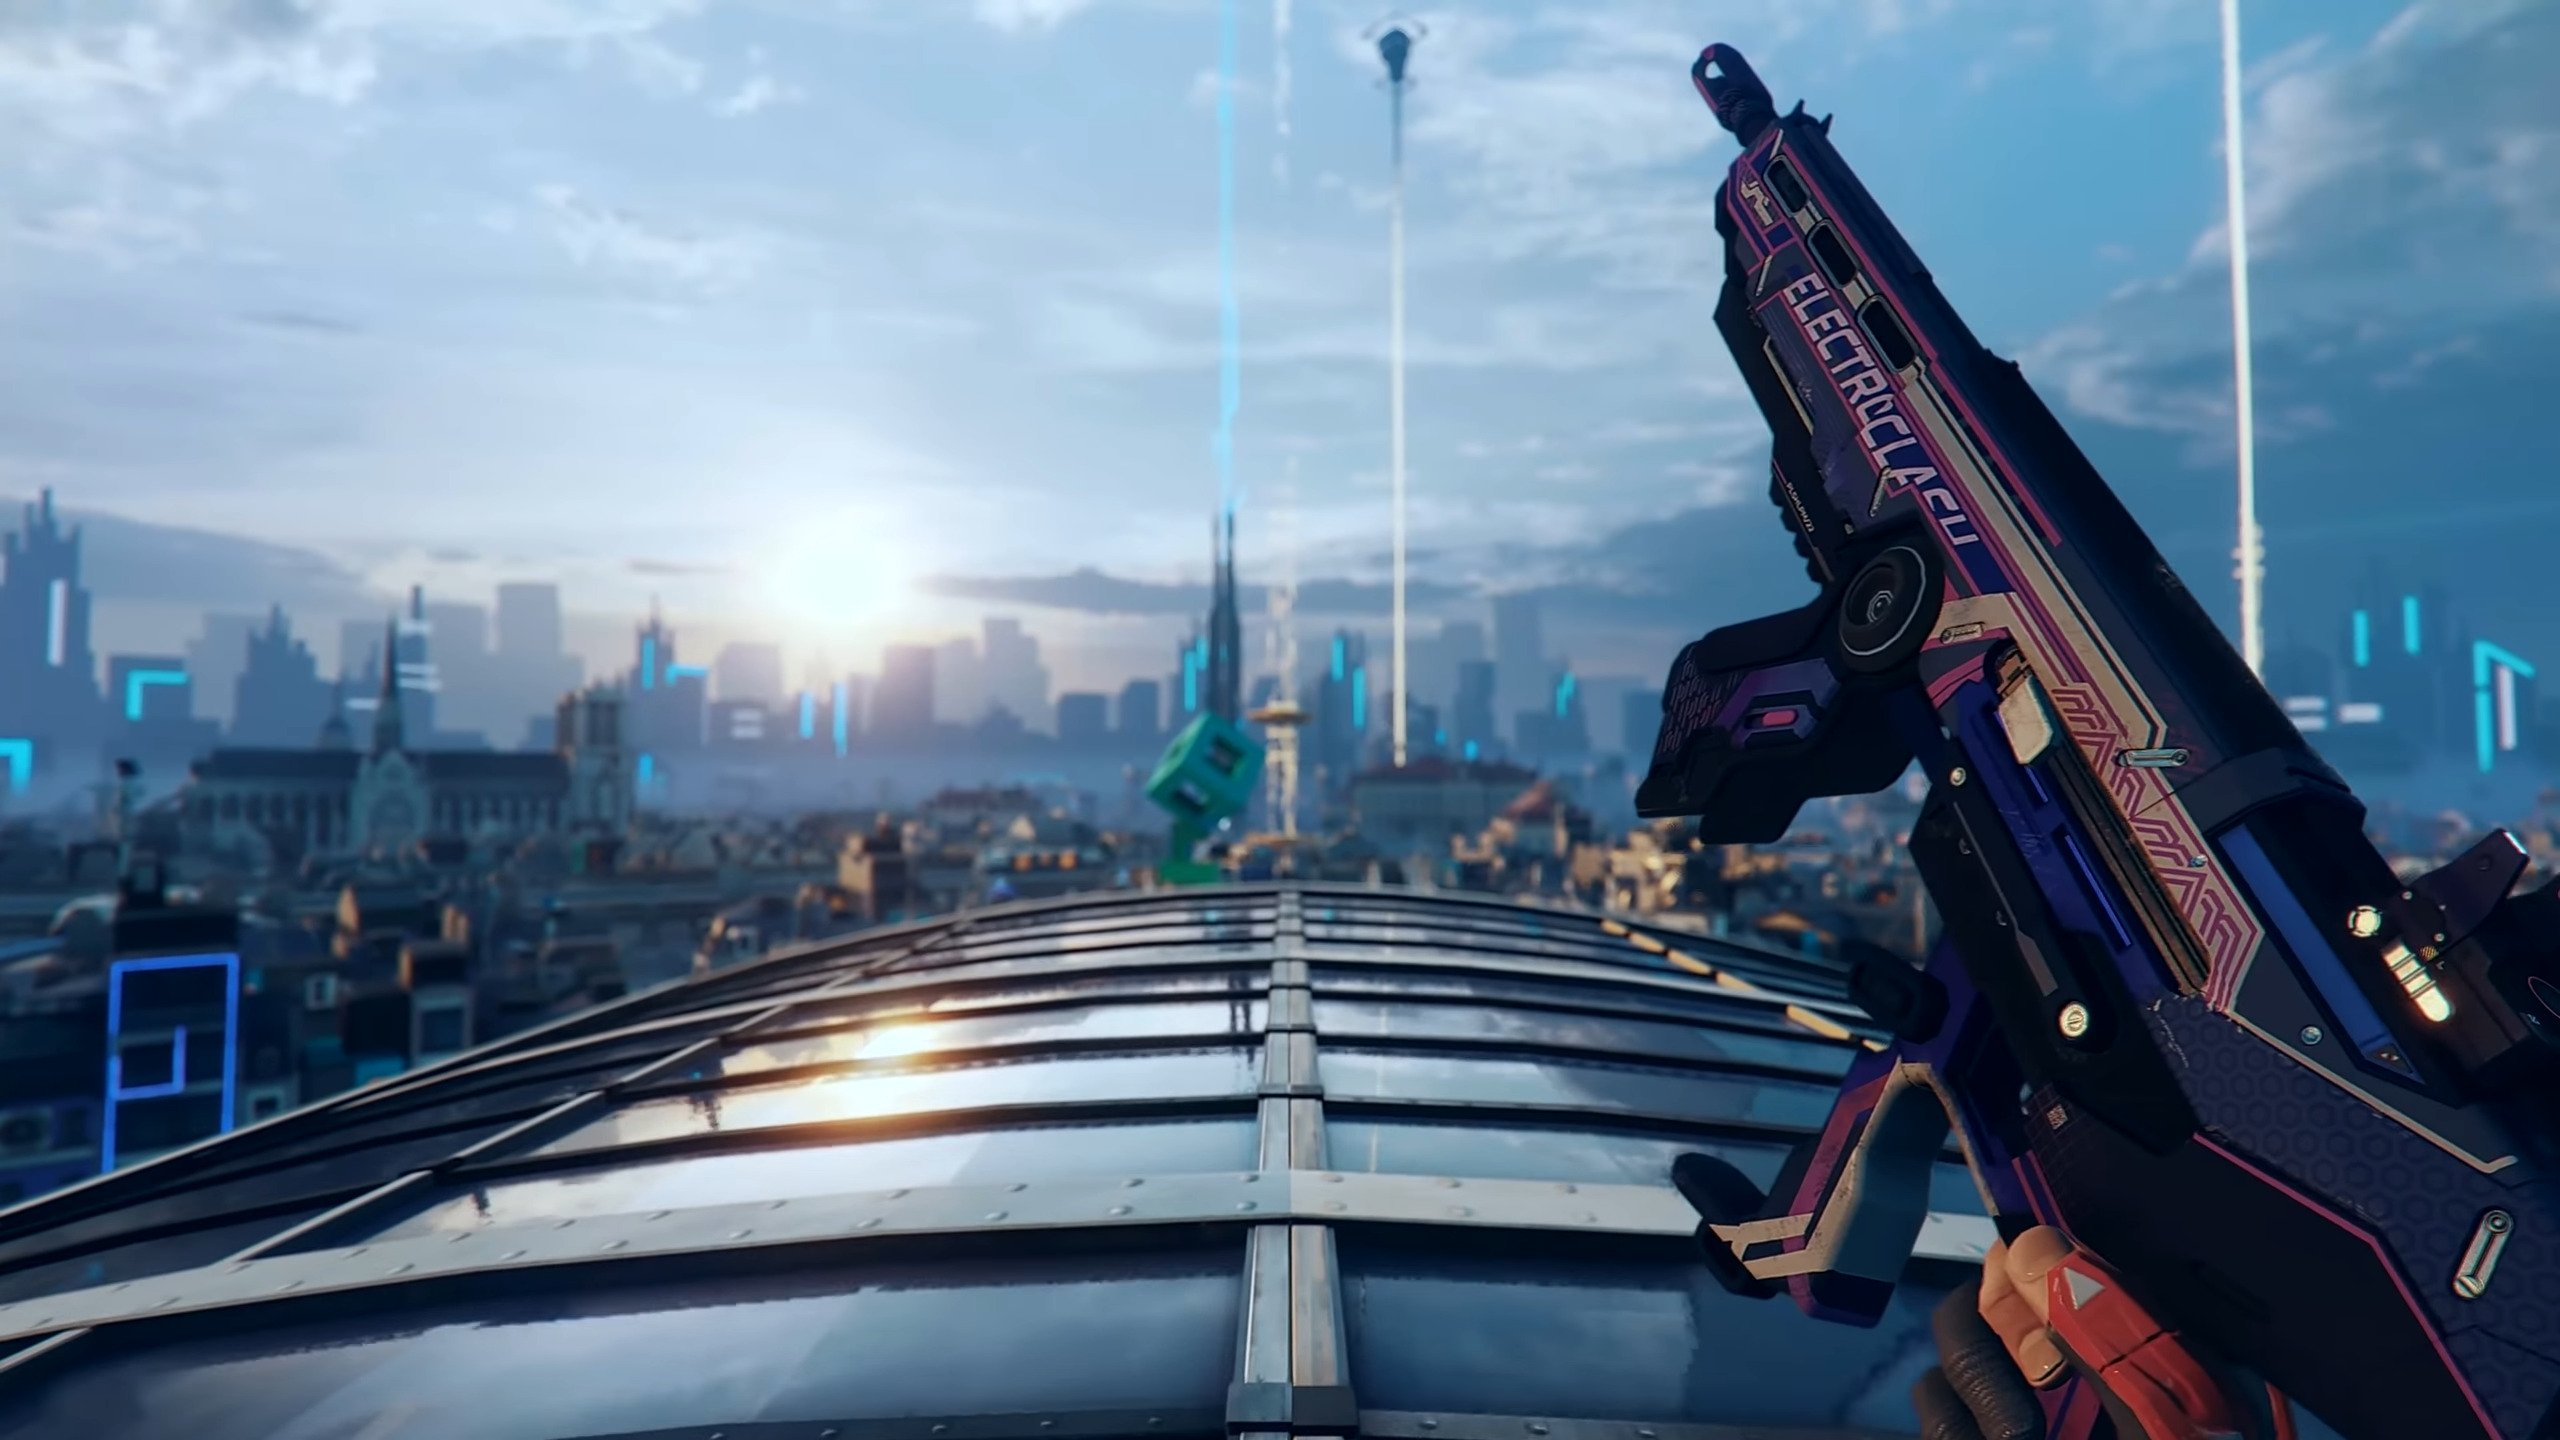 Hyper Scape Review For Consoles – This Is No Apex Legends, But There Is Potential In Ubisoft's New Battle Royale